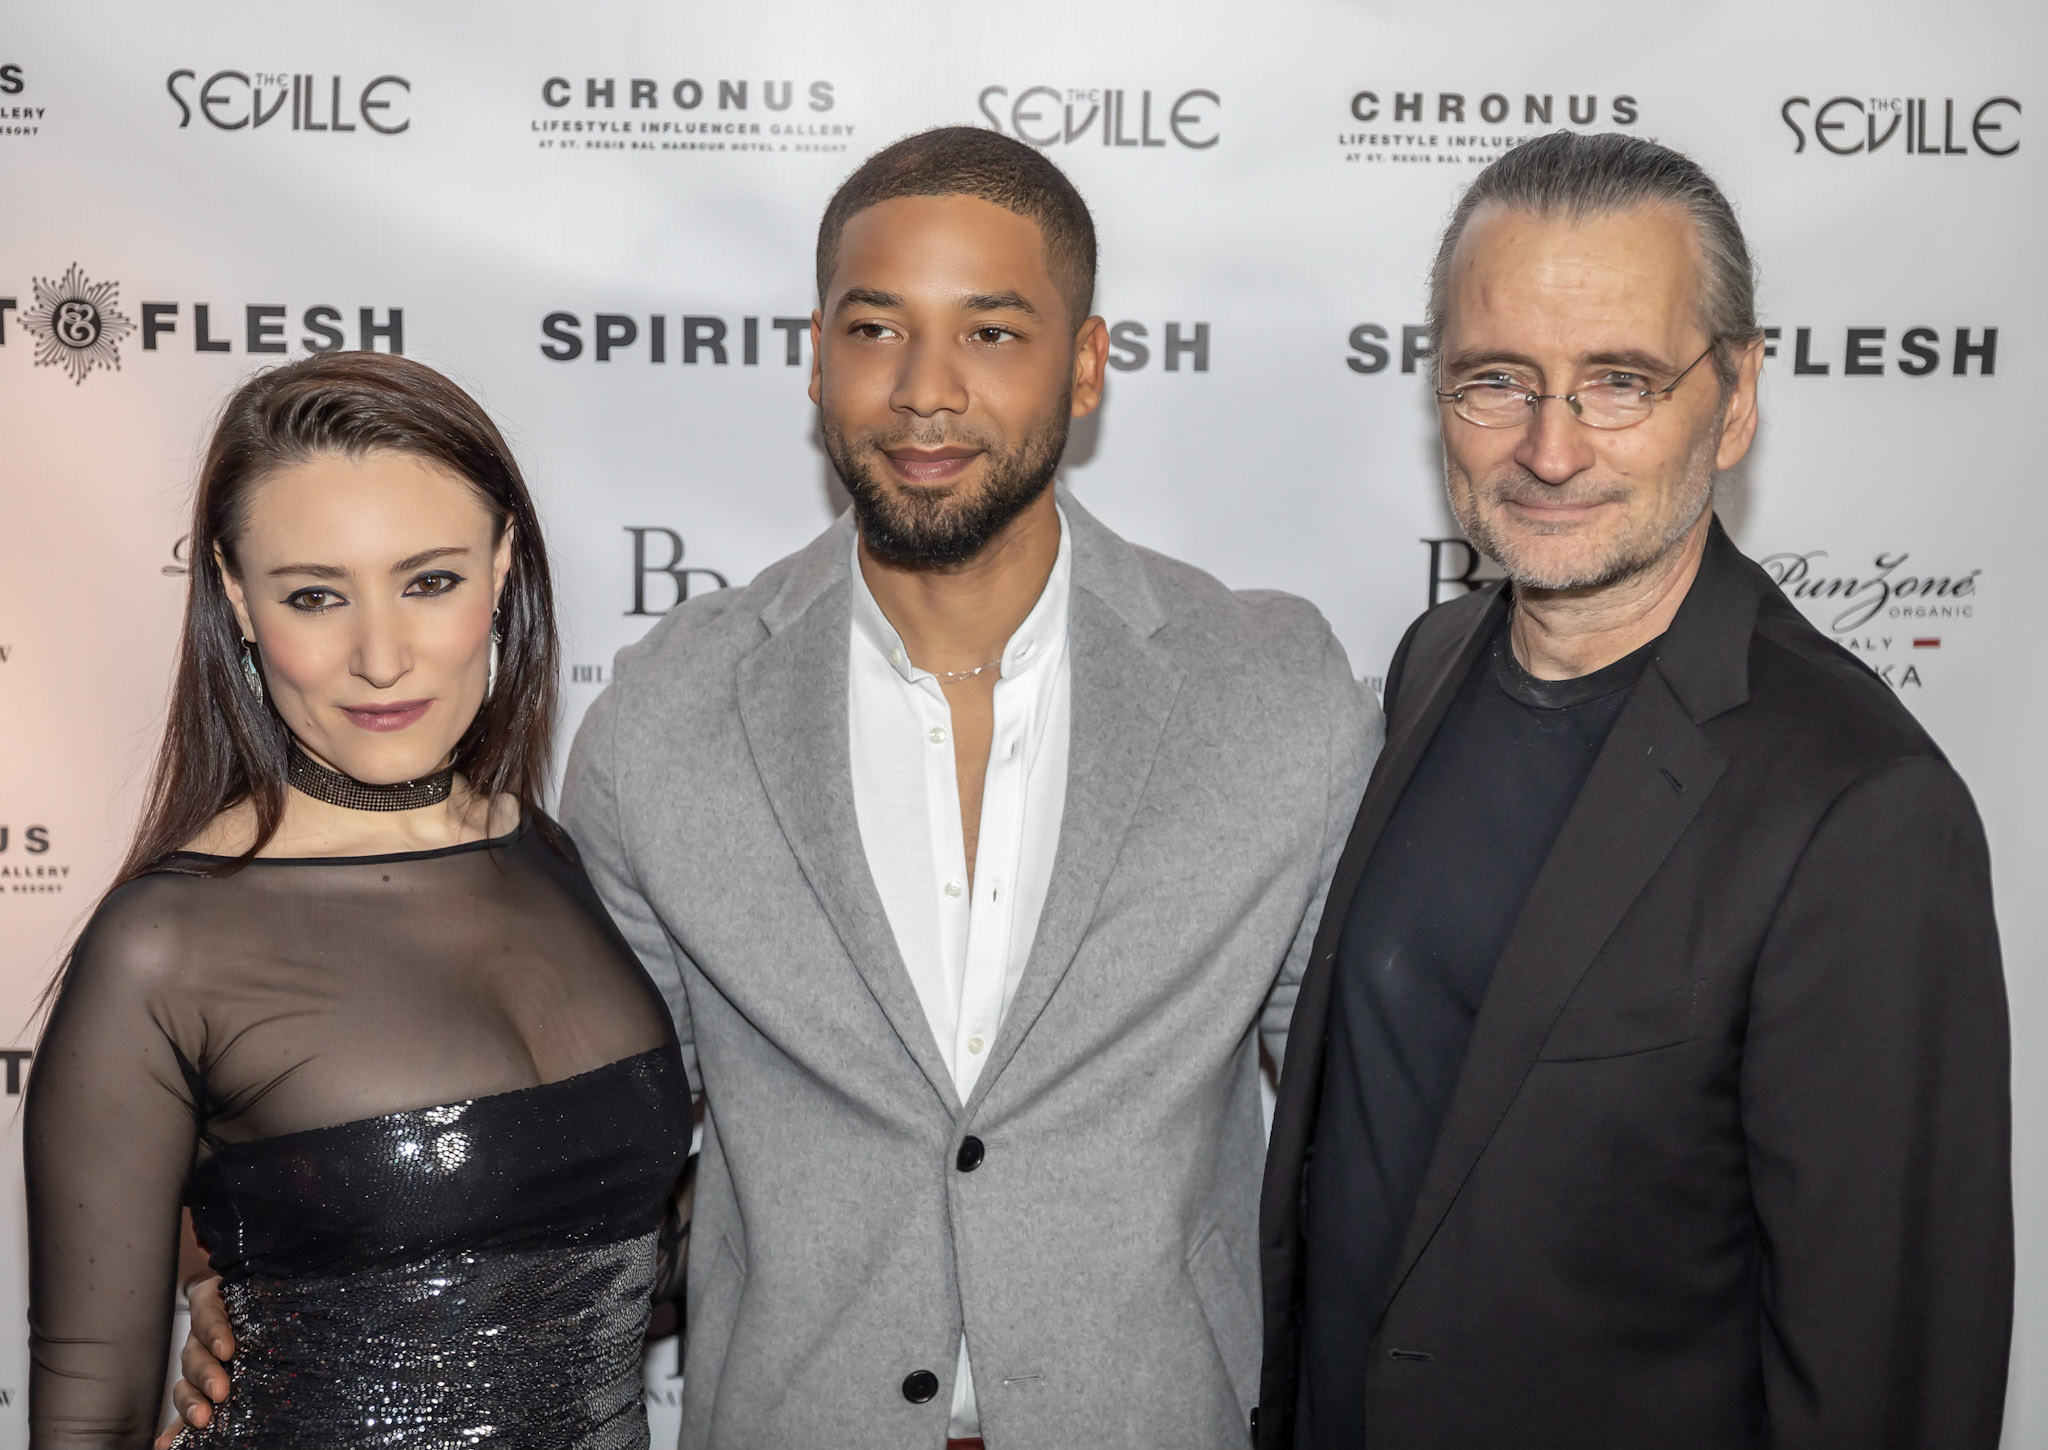 Spirit & Flesh Magazine cover event, Yelena Deyneko, Jussie Smollett and Chris Austopchuk by Kenneth de la Torre